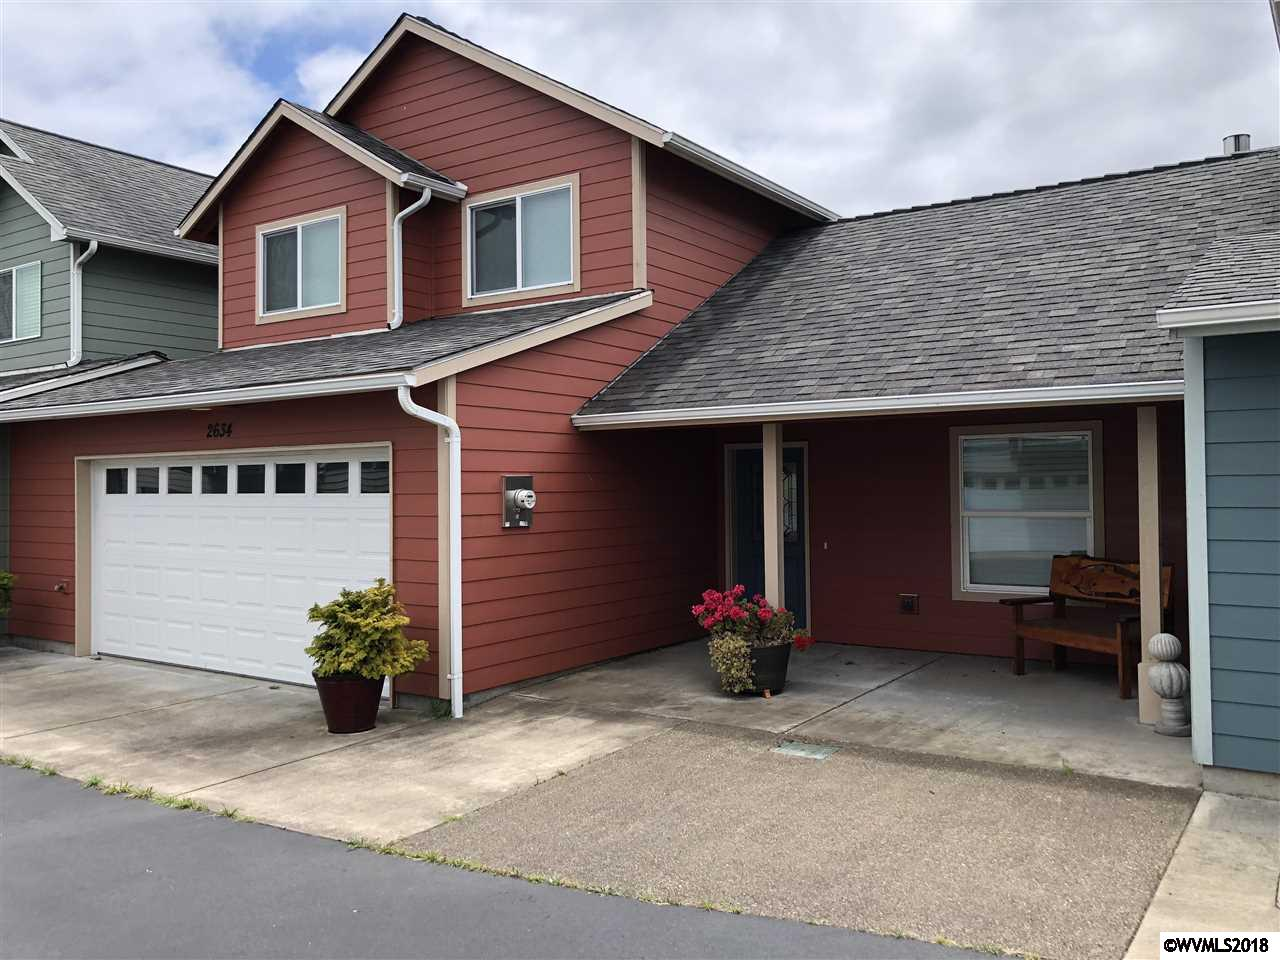 Newport Oregon Real Estate 2634 Sw Brant Playa Del Sur Towhnouseii